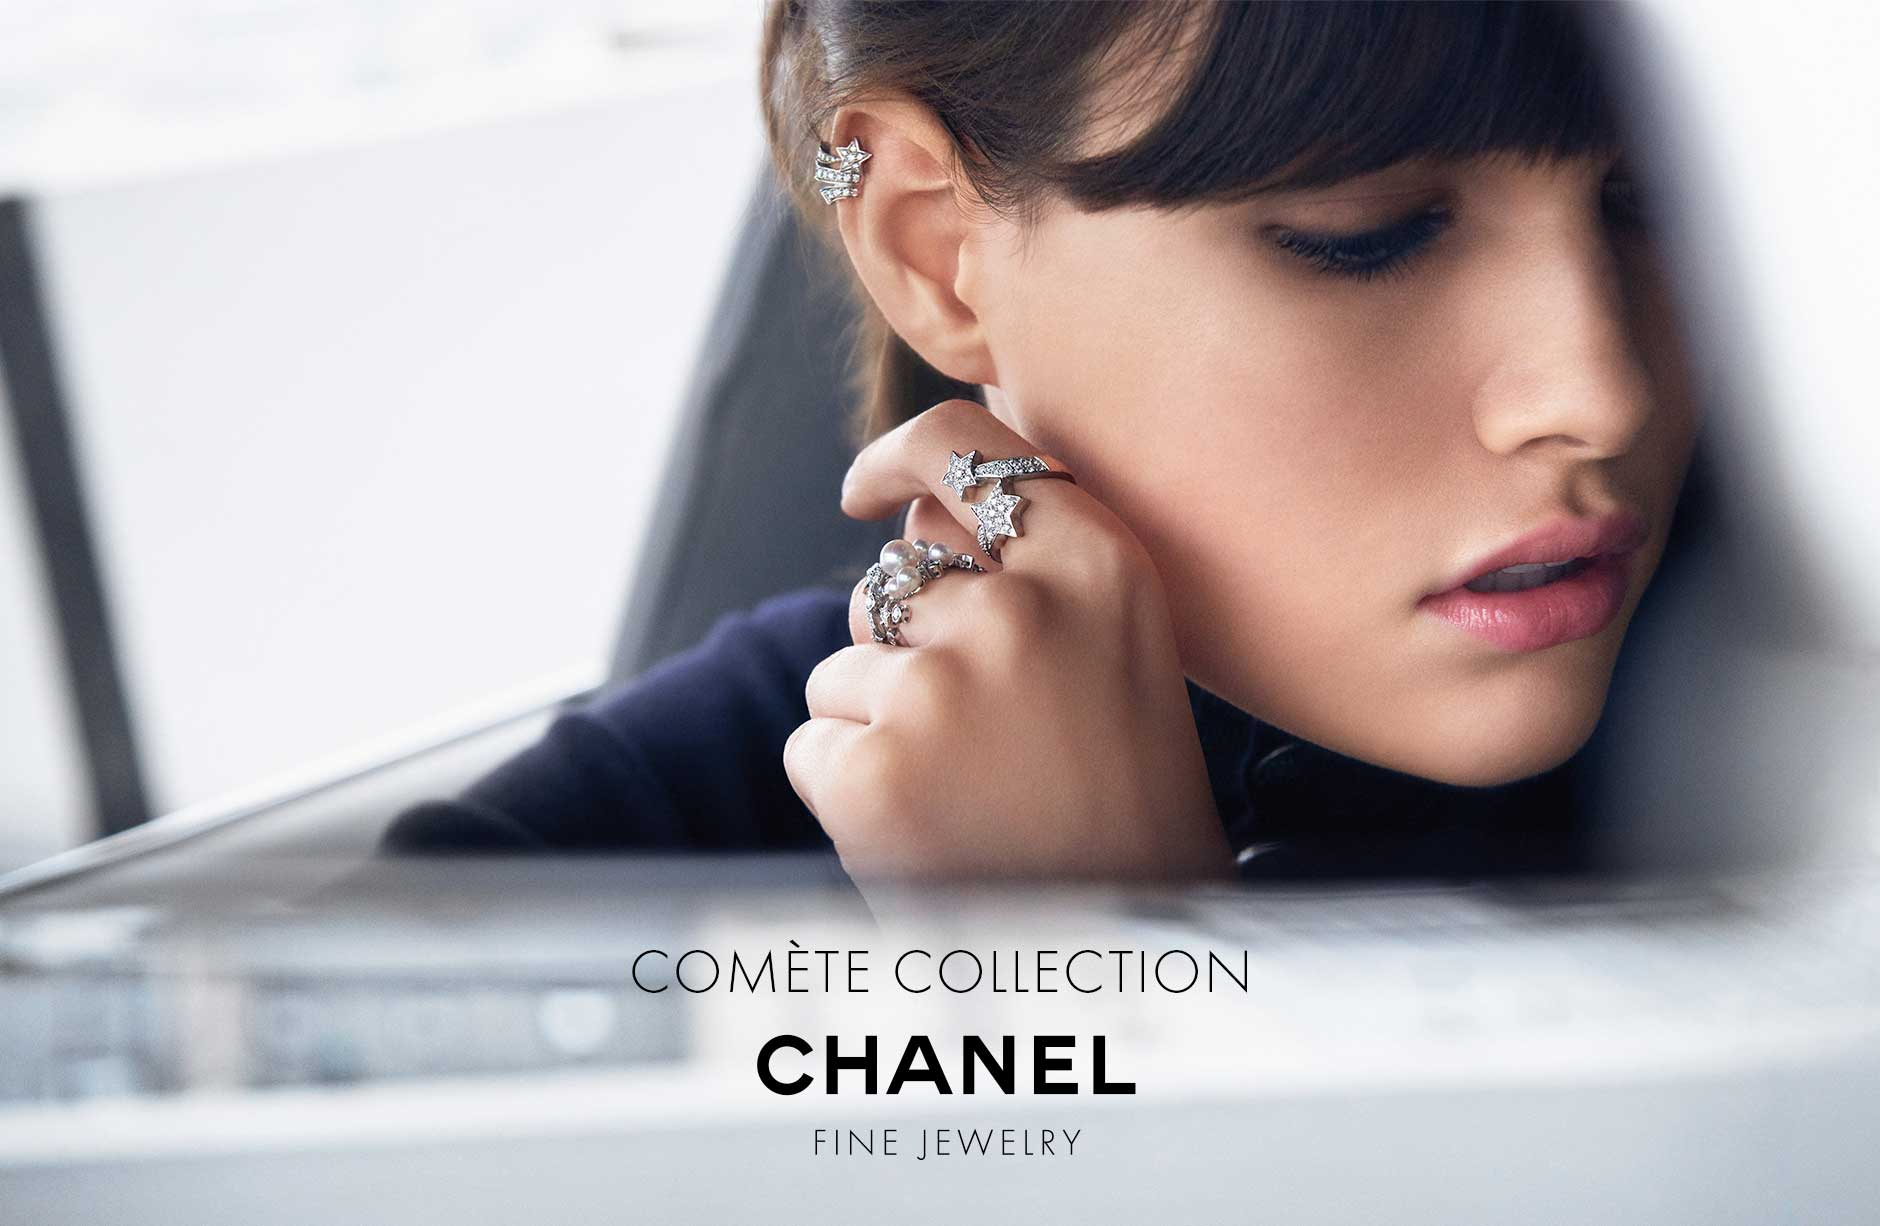 Chanel: Fine Jewelry - Comete Collection